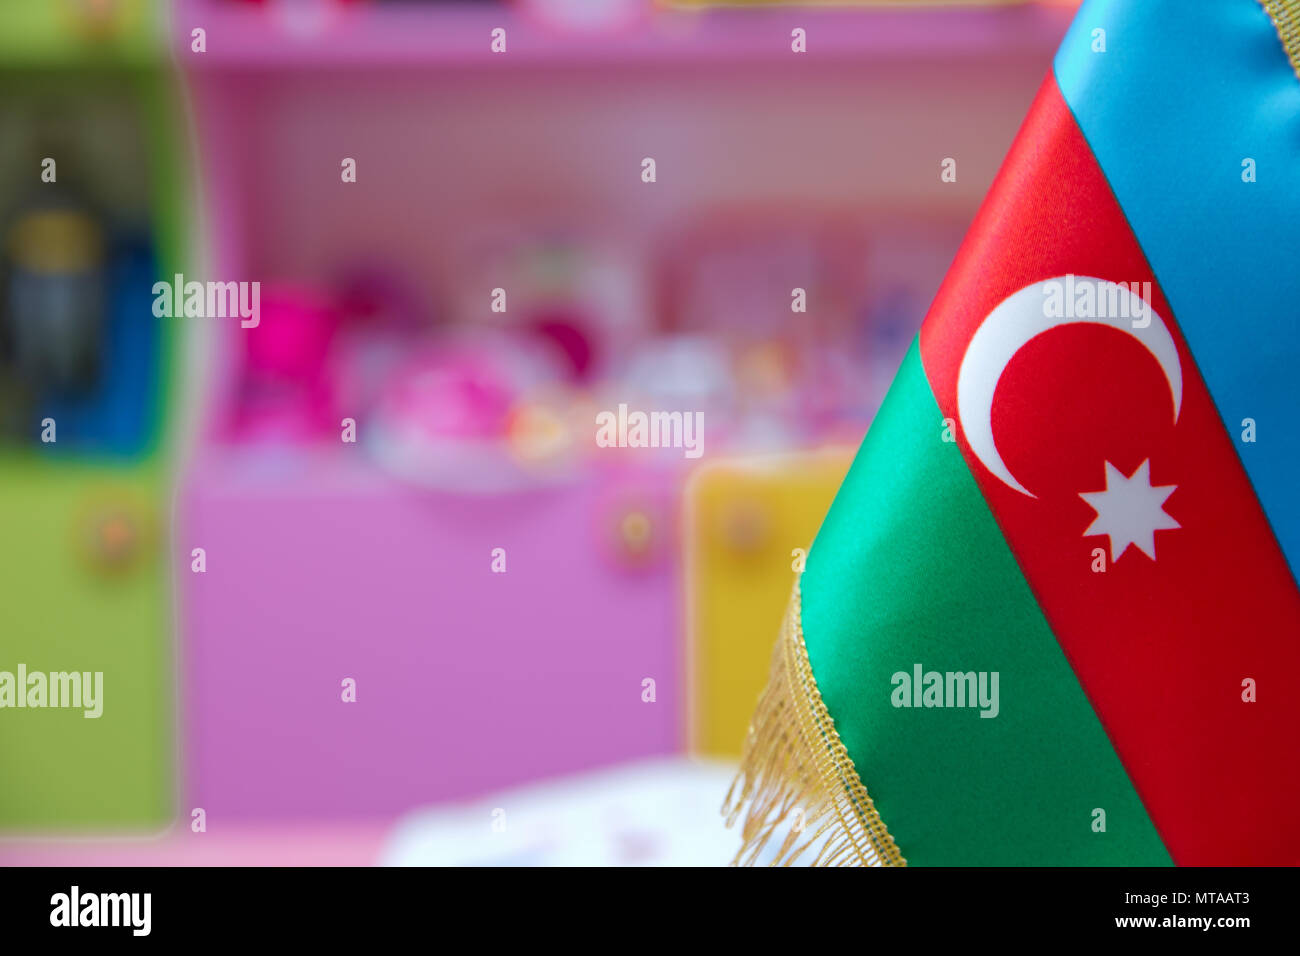 Tooth pick wit a small paper flag of Azerbaijan Stock Photo